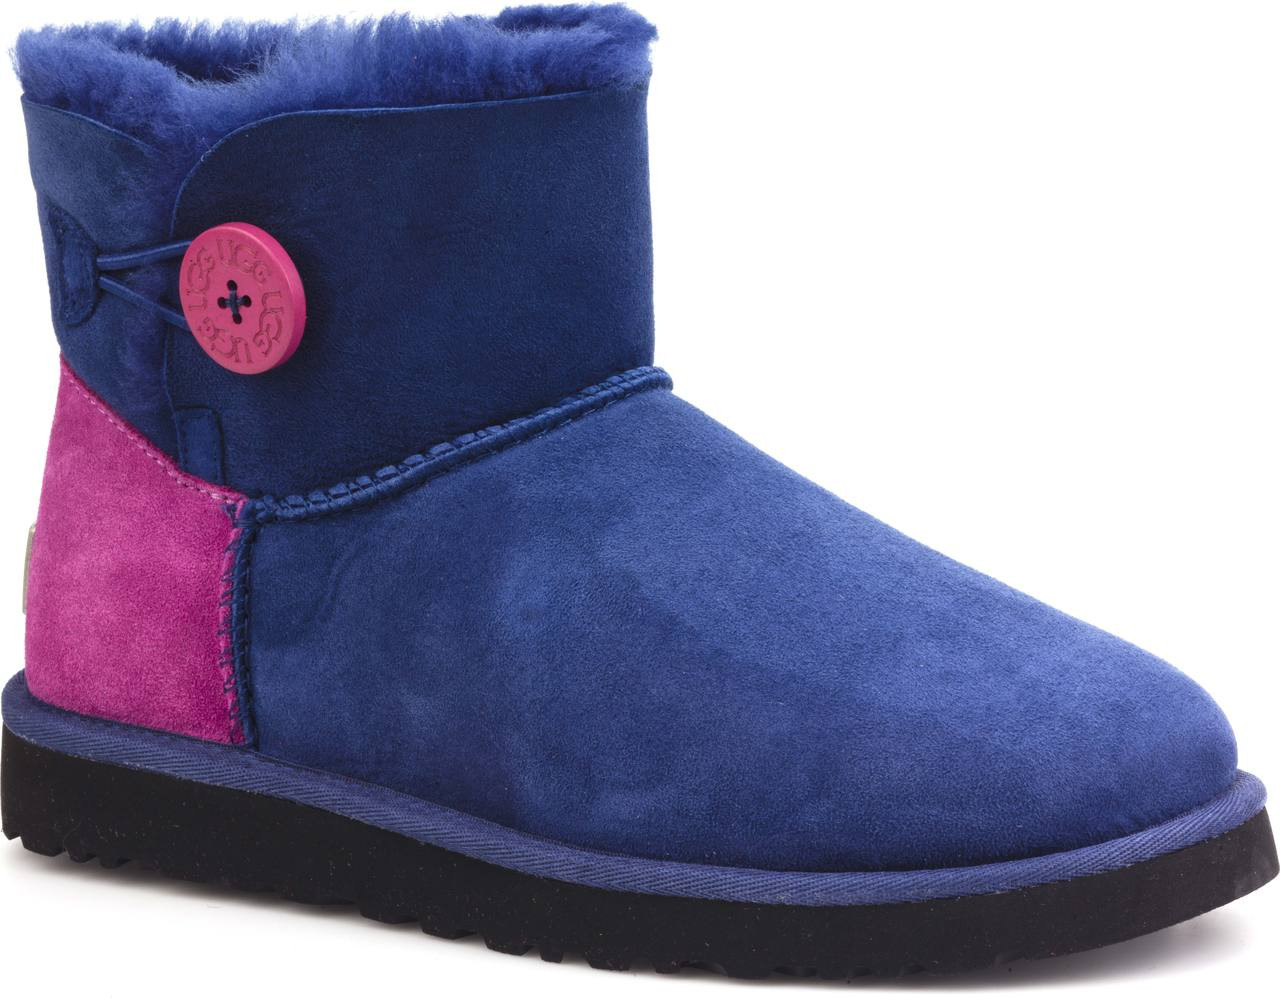 12146787fab denmark ugg bailey button neon review 72baa 38766